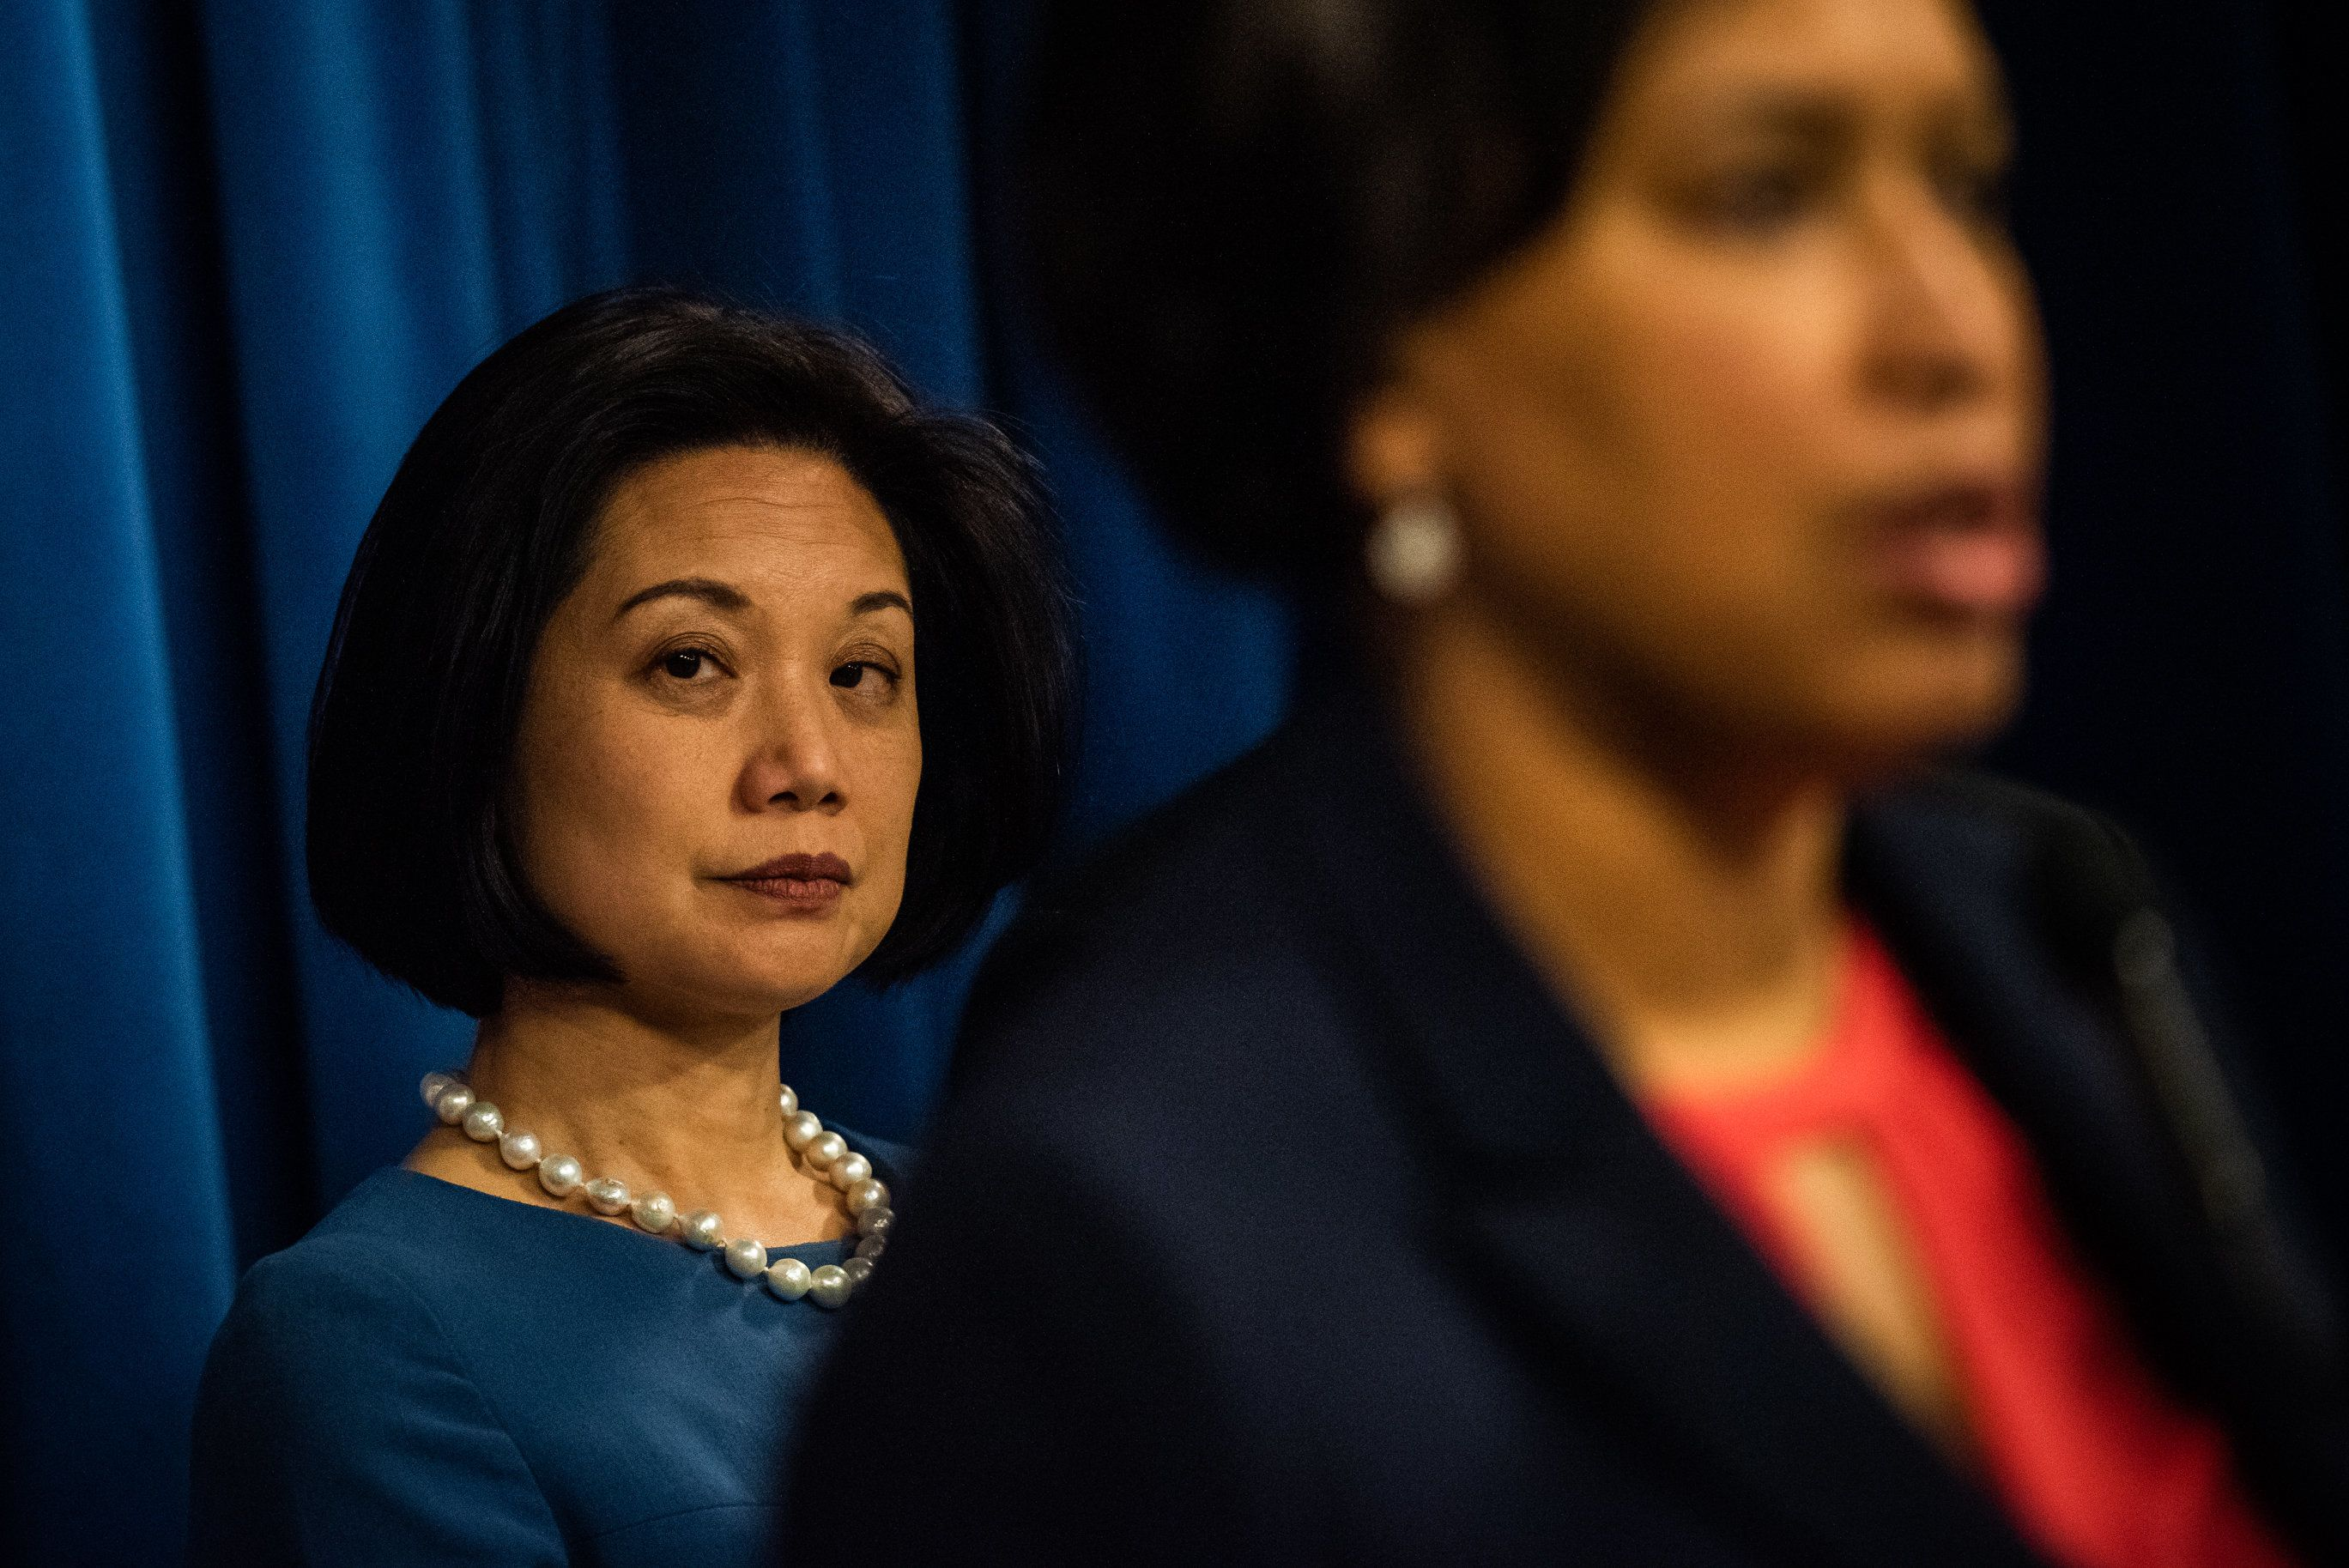 WASHINGTON, DC - FEBRUARY 6: United States Attorney for the District of Columbia Jessie K. Liu looks on as D.C. Mayor Muriel Bowser speak during a press conference on Wednesday, February 6, 2019, in Washington, D.C. The press conference included collective strategies to reduce violent crime and illegal gun possession in the District. (Photo by Salwan Georges/The Washington Post via Getty Images)